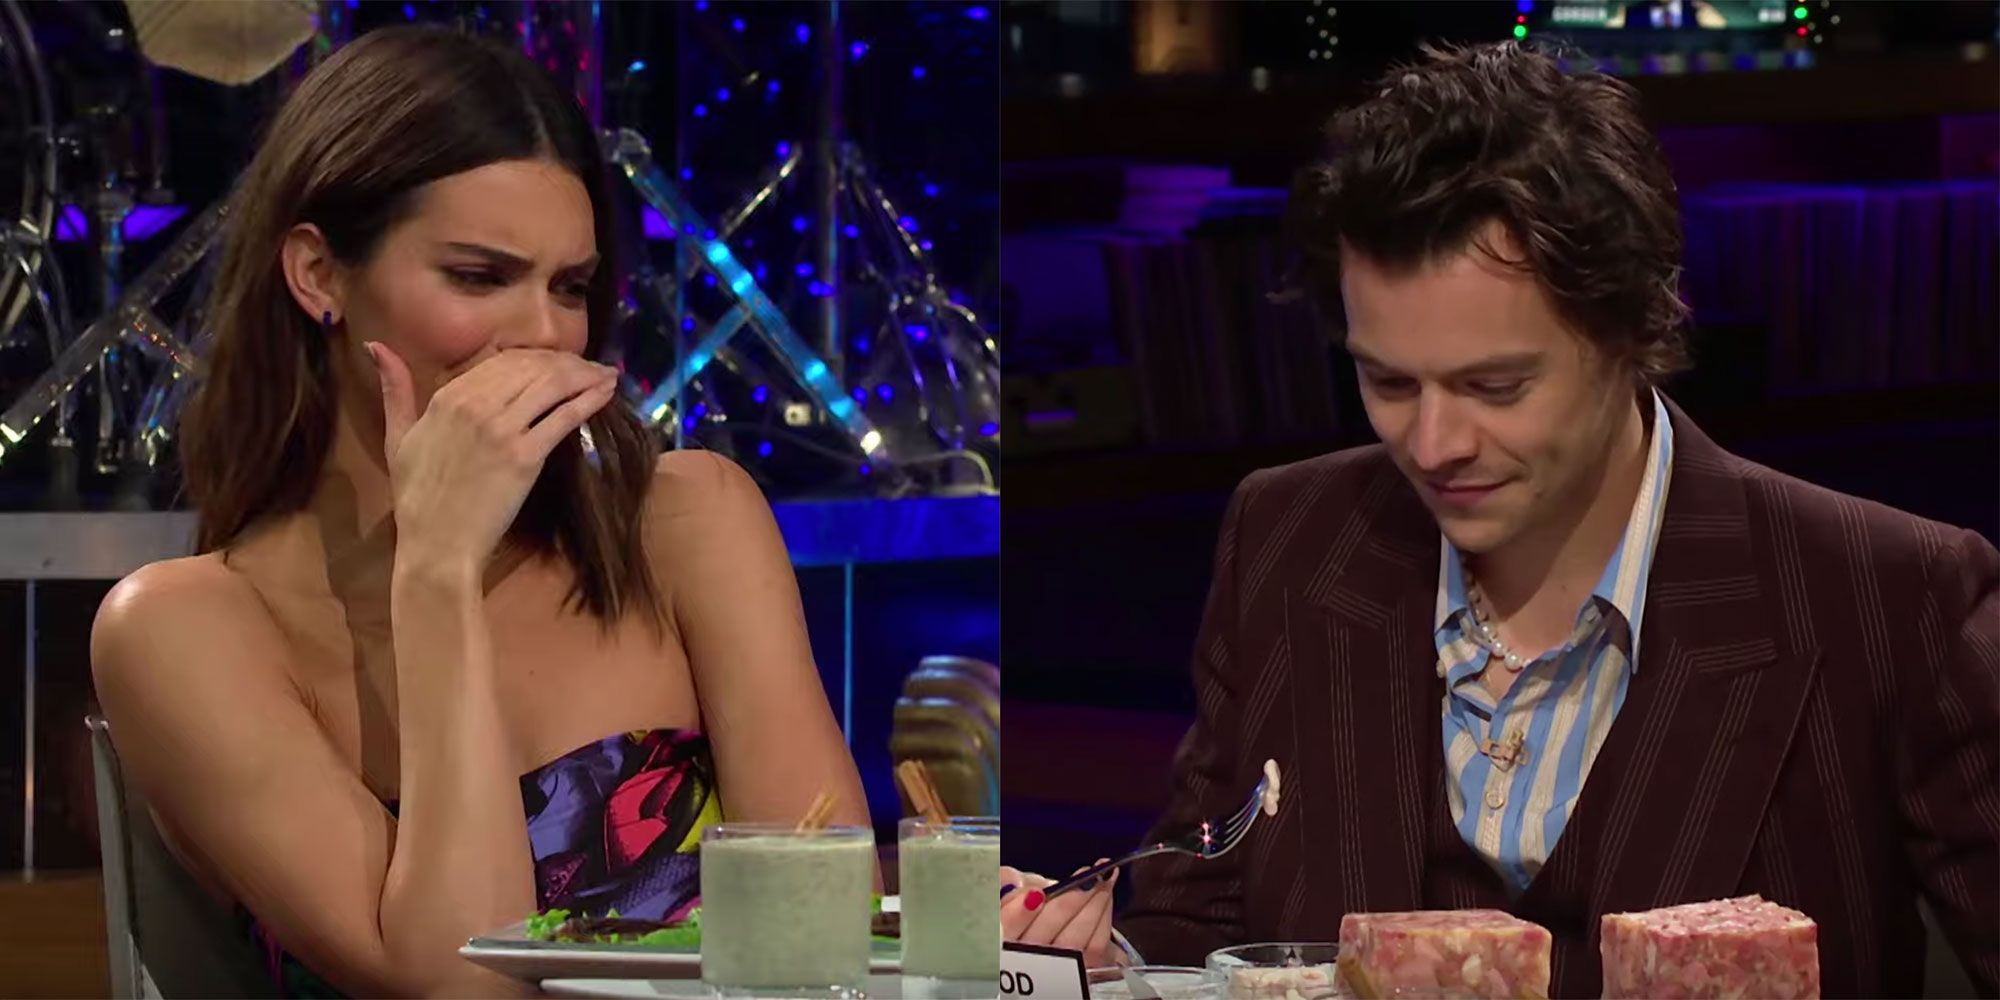 Harry Styles Ate Cod Sperm to Avoid Telling His Ex Kendall Jenner Which Songs Are About Her